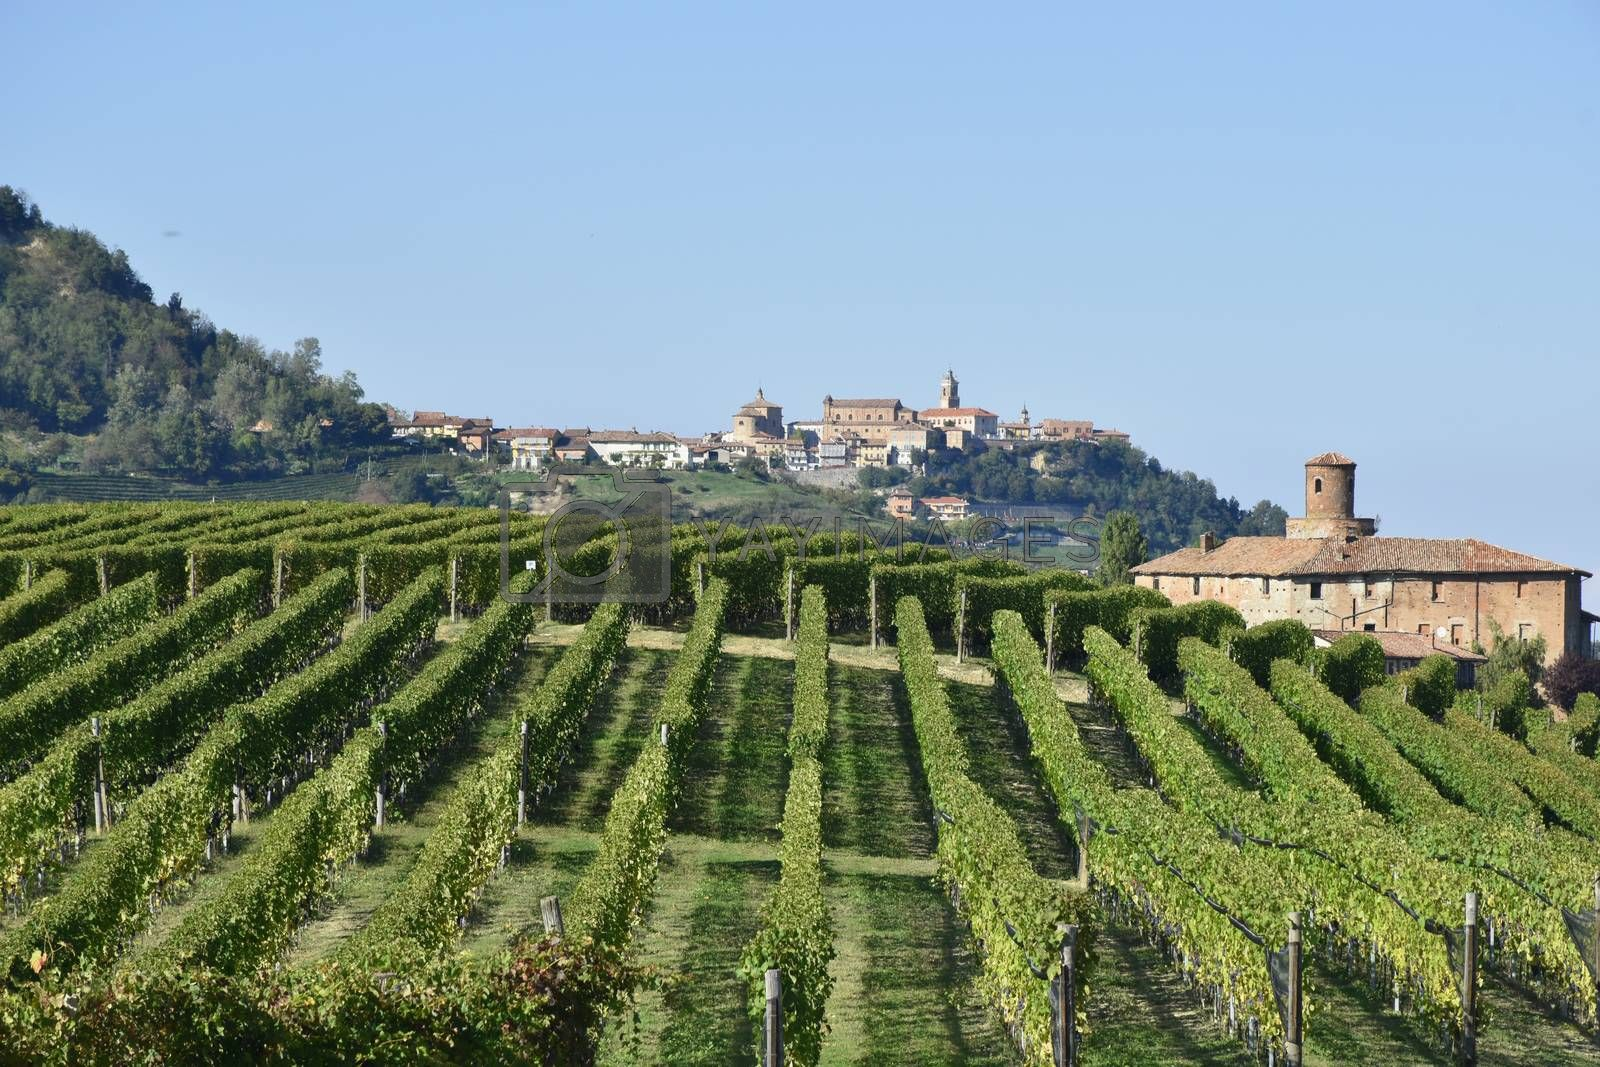 Langhe vineyards panorama, famous for Italian wine production in Piedmont